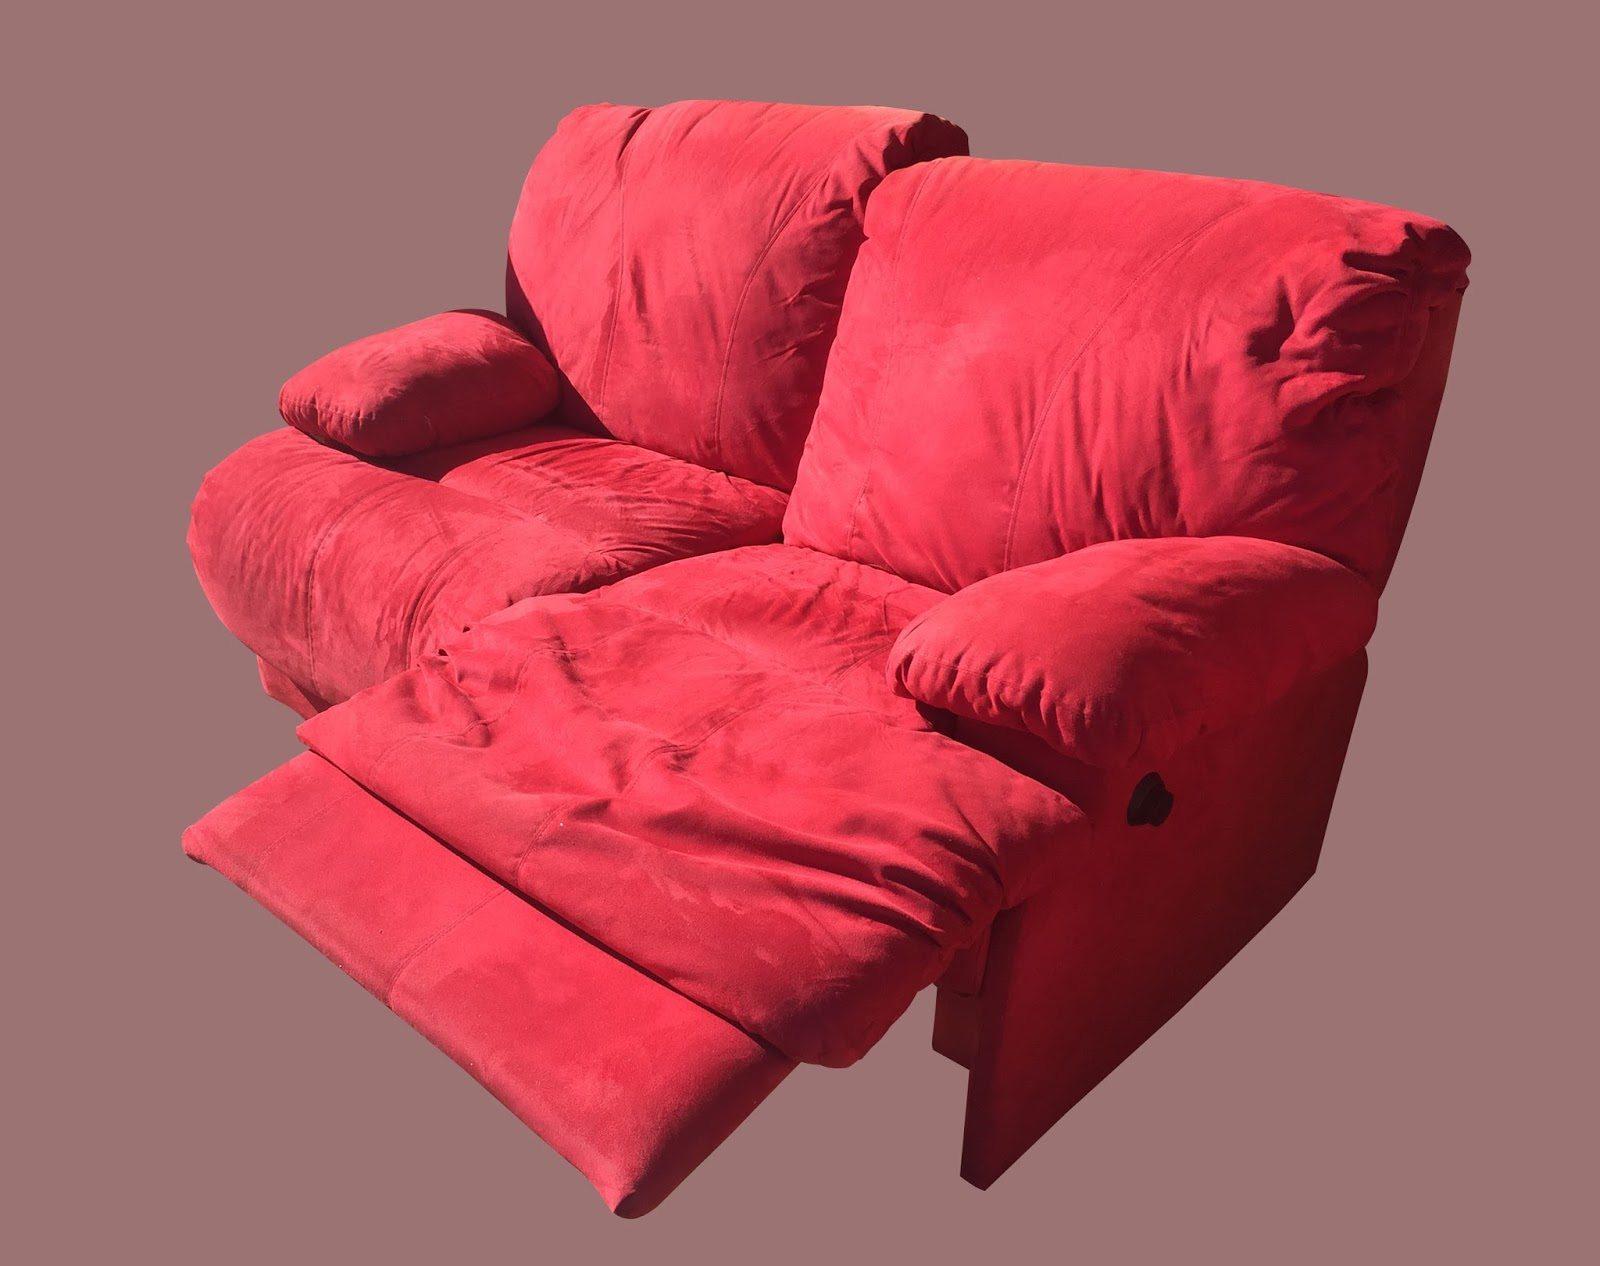 Uhuru Furniture Collectibles Red Microfiber Recliner